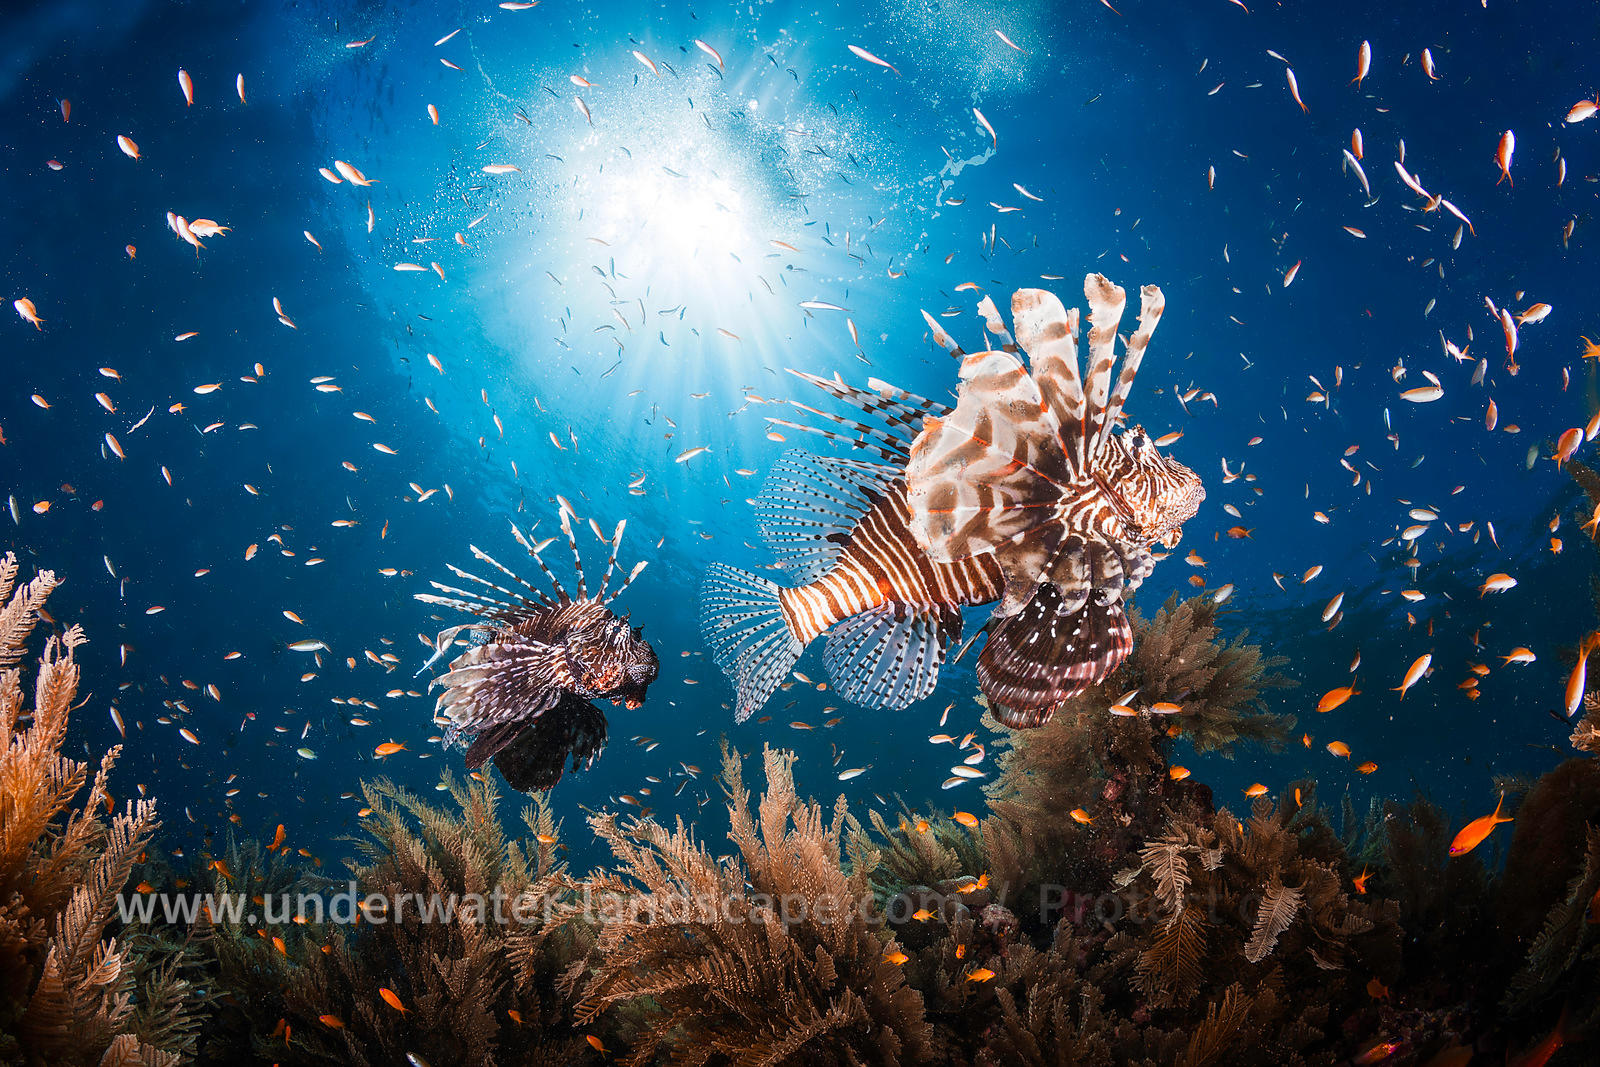 Lionfish underwater photo in Moheli island